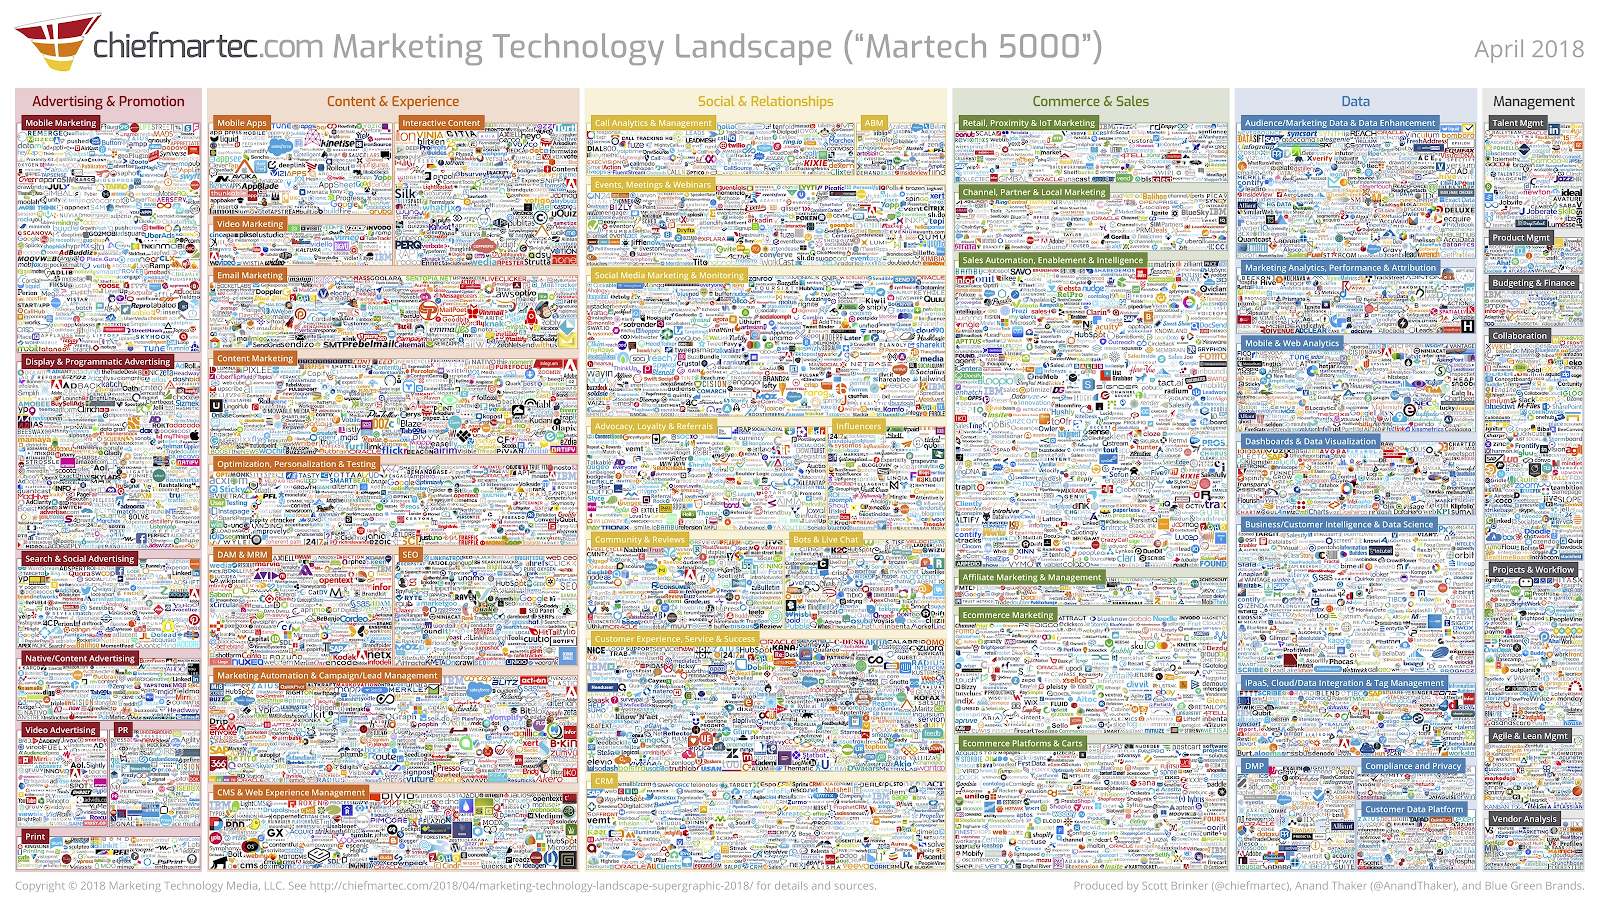 personalization trends martech 5000